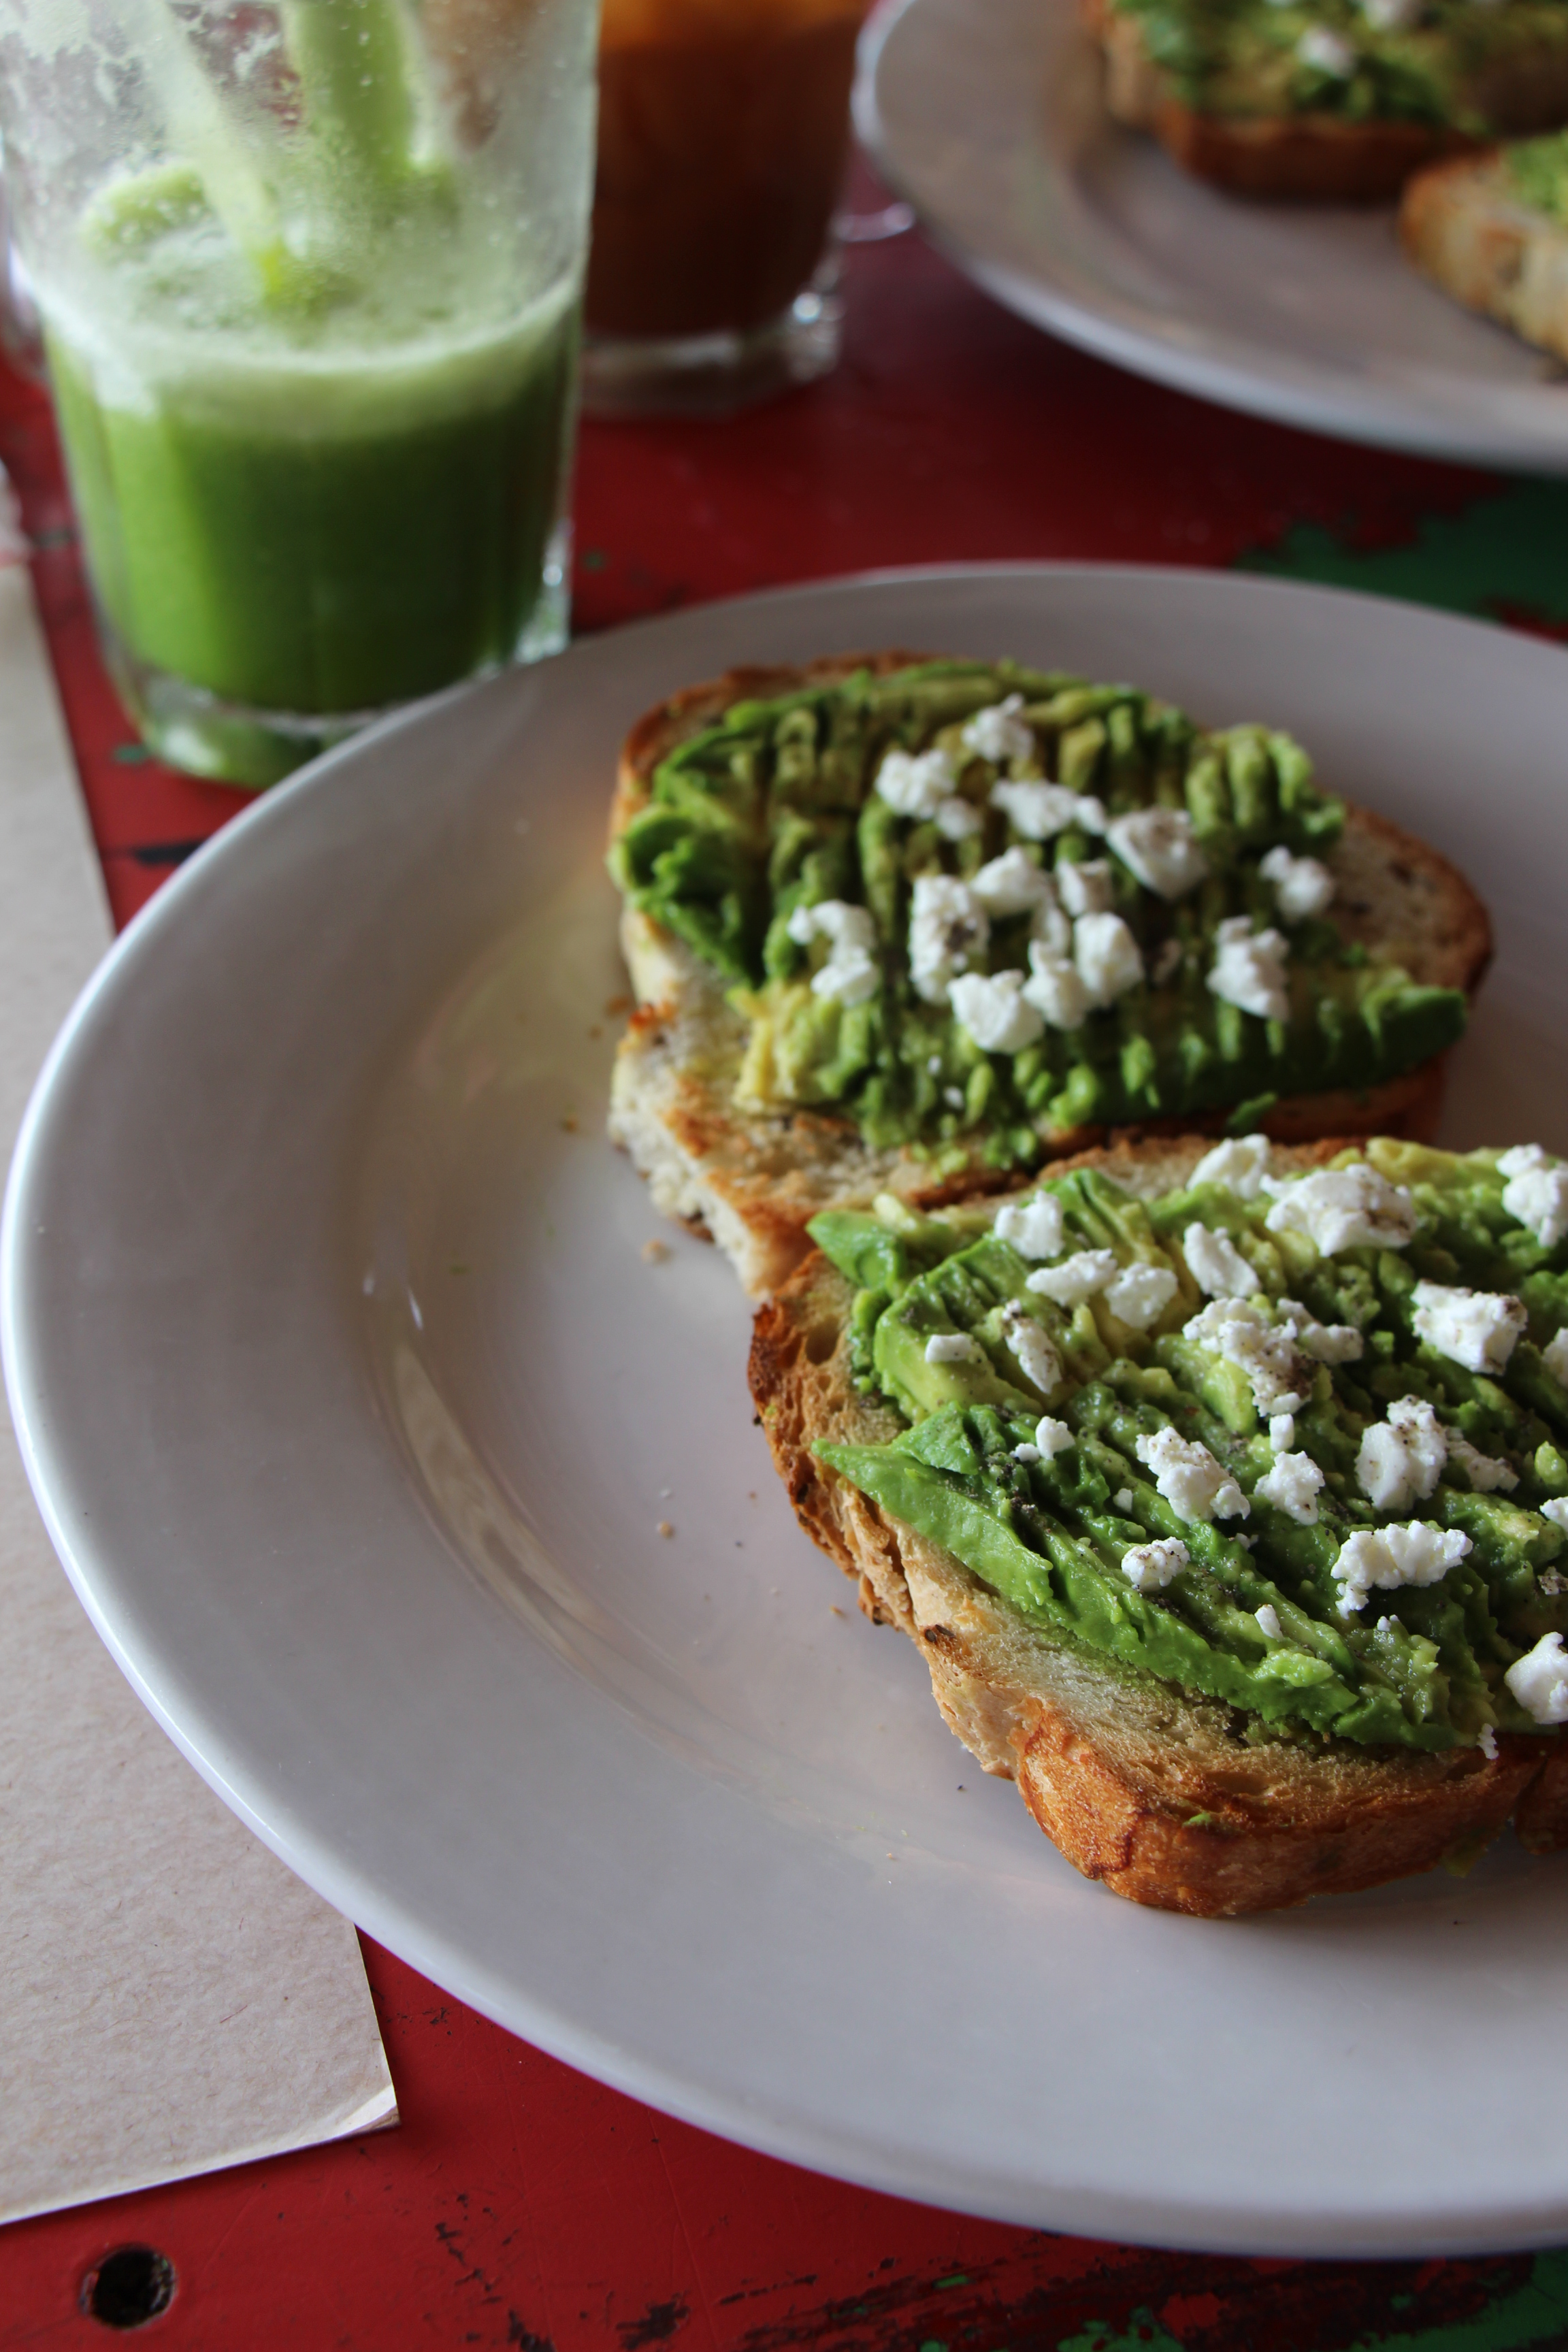 Avocado Toast on Red Table